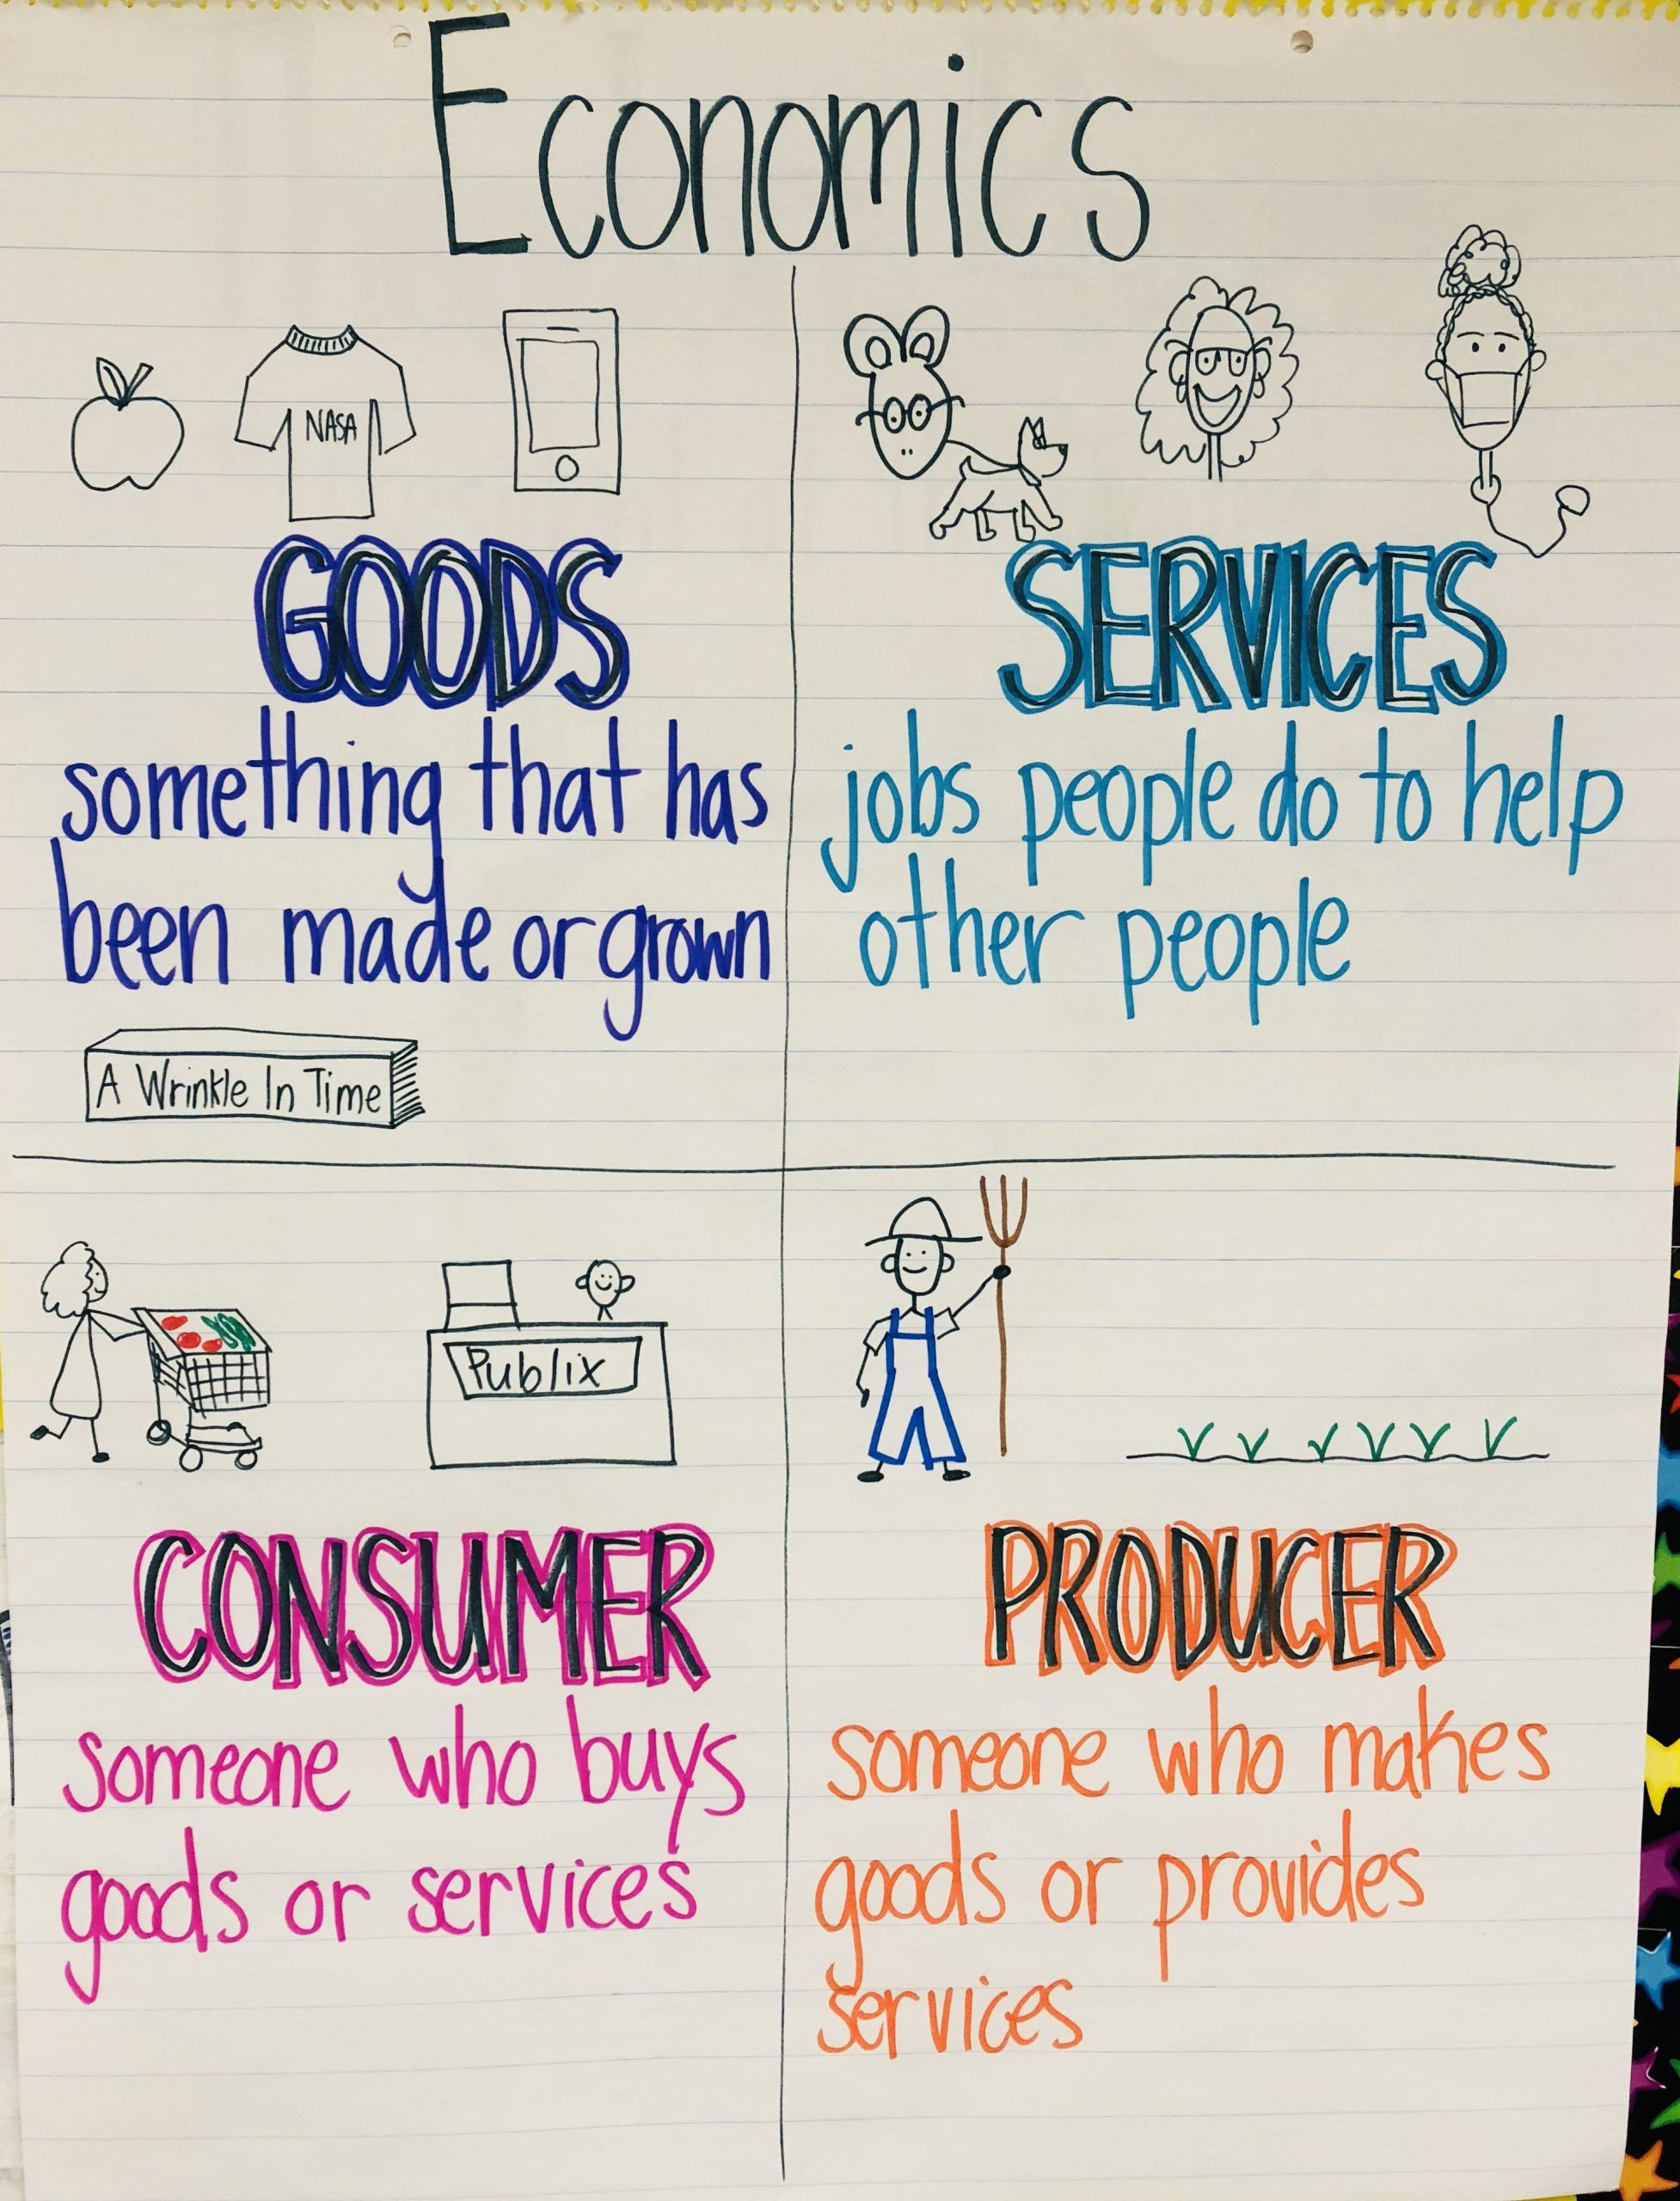 medium resolution of Producers and Consumers Worksheet Economics Goods Services Consumer  Producer Anchorchart   Teaching economics